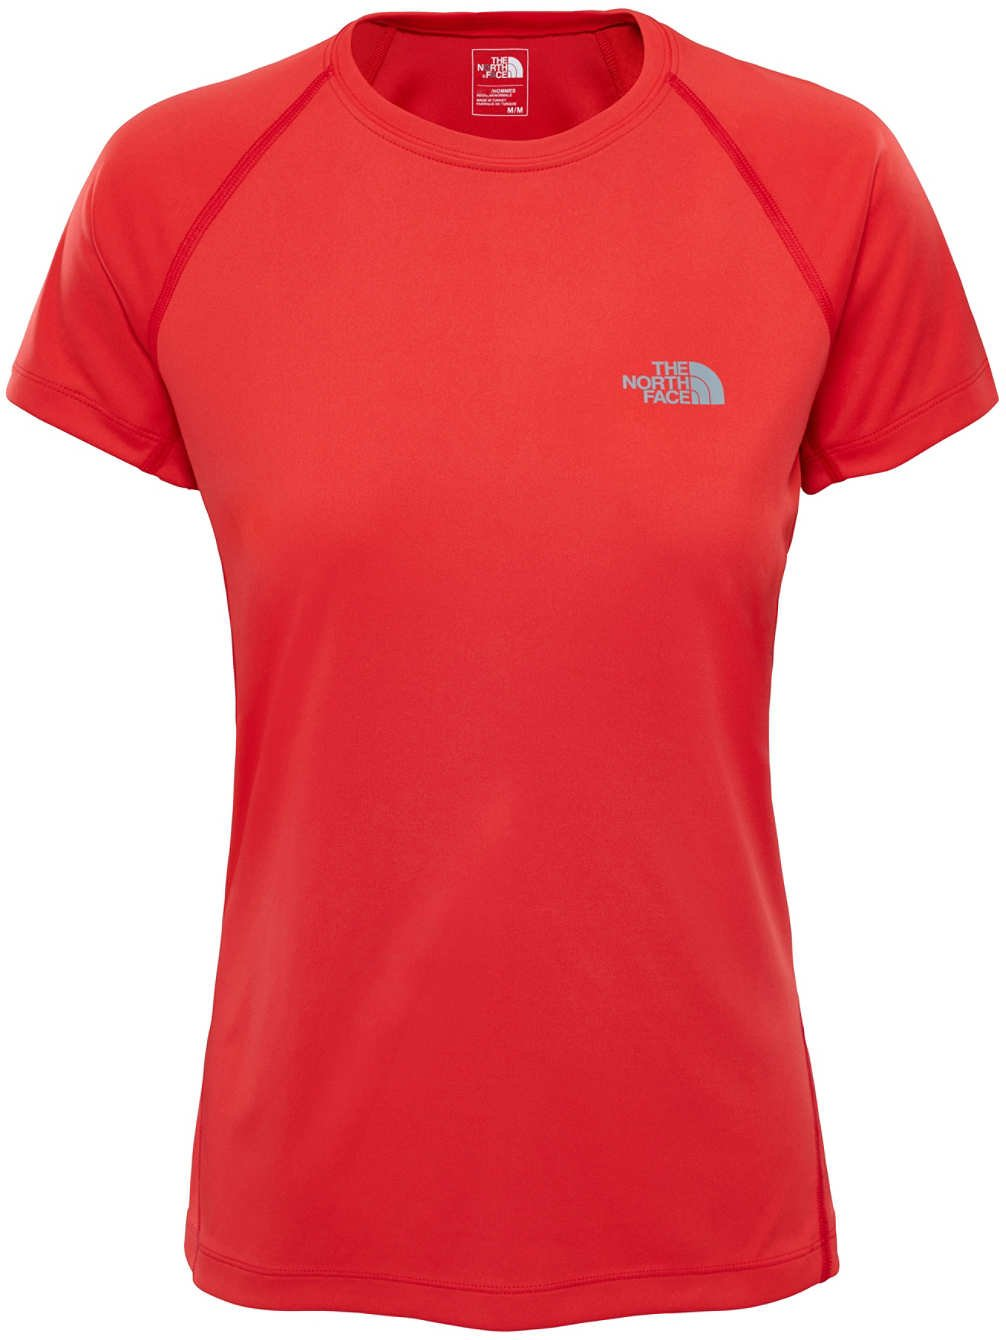 The North Face W S/S Flex EU Camiseta, Mujer